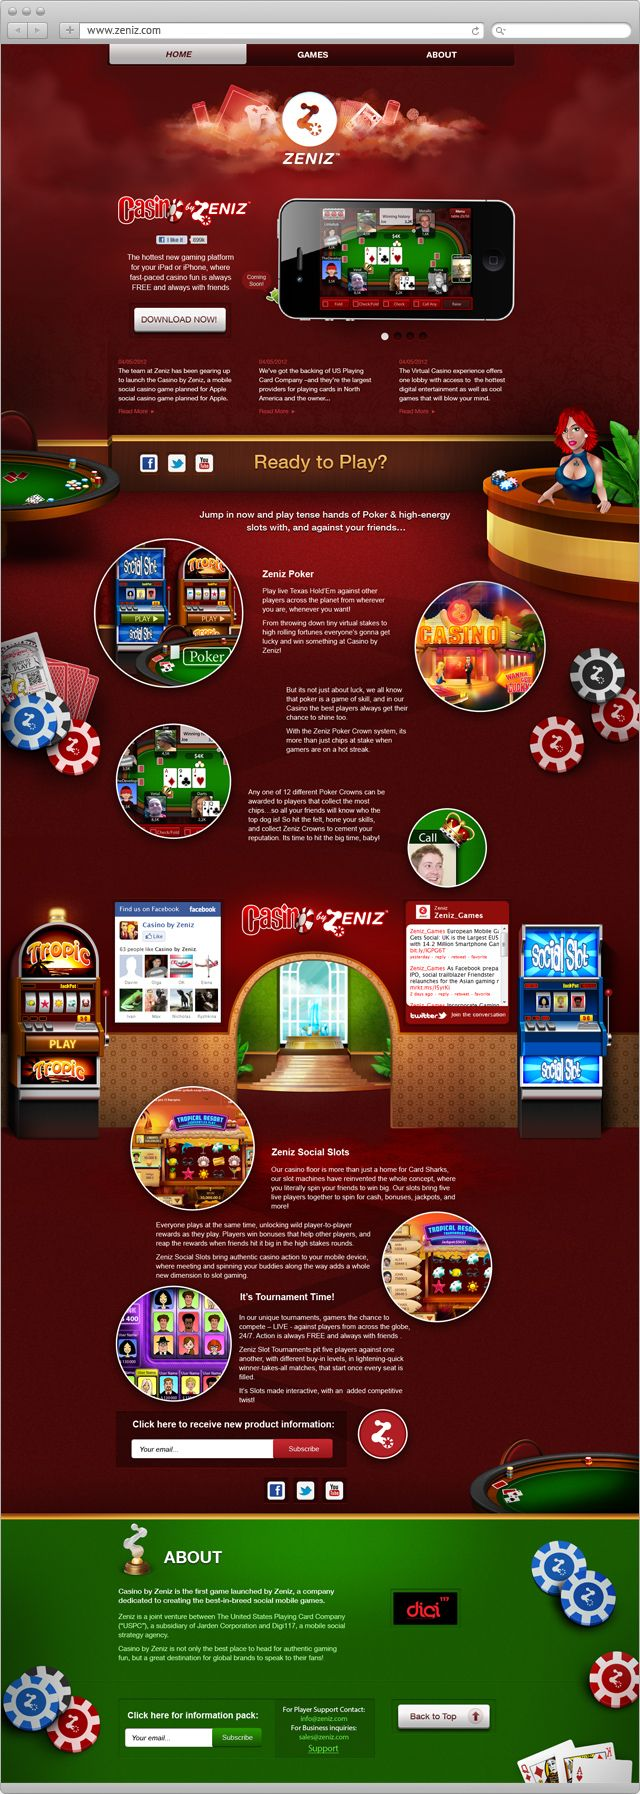 Gambling information pack internet online gambling laws